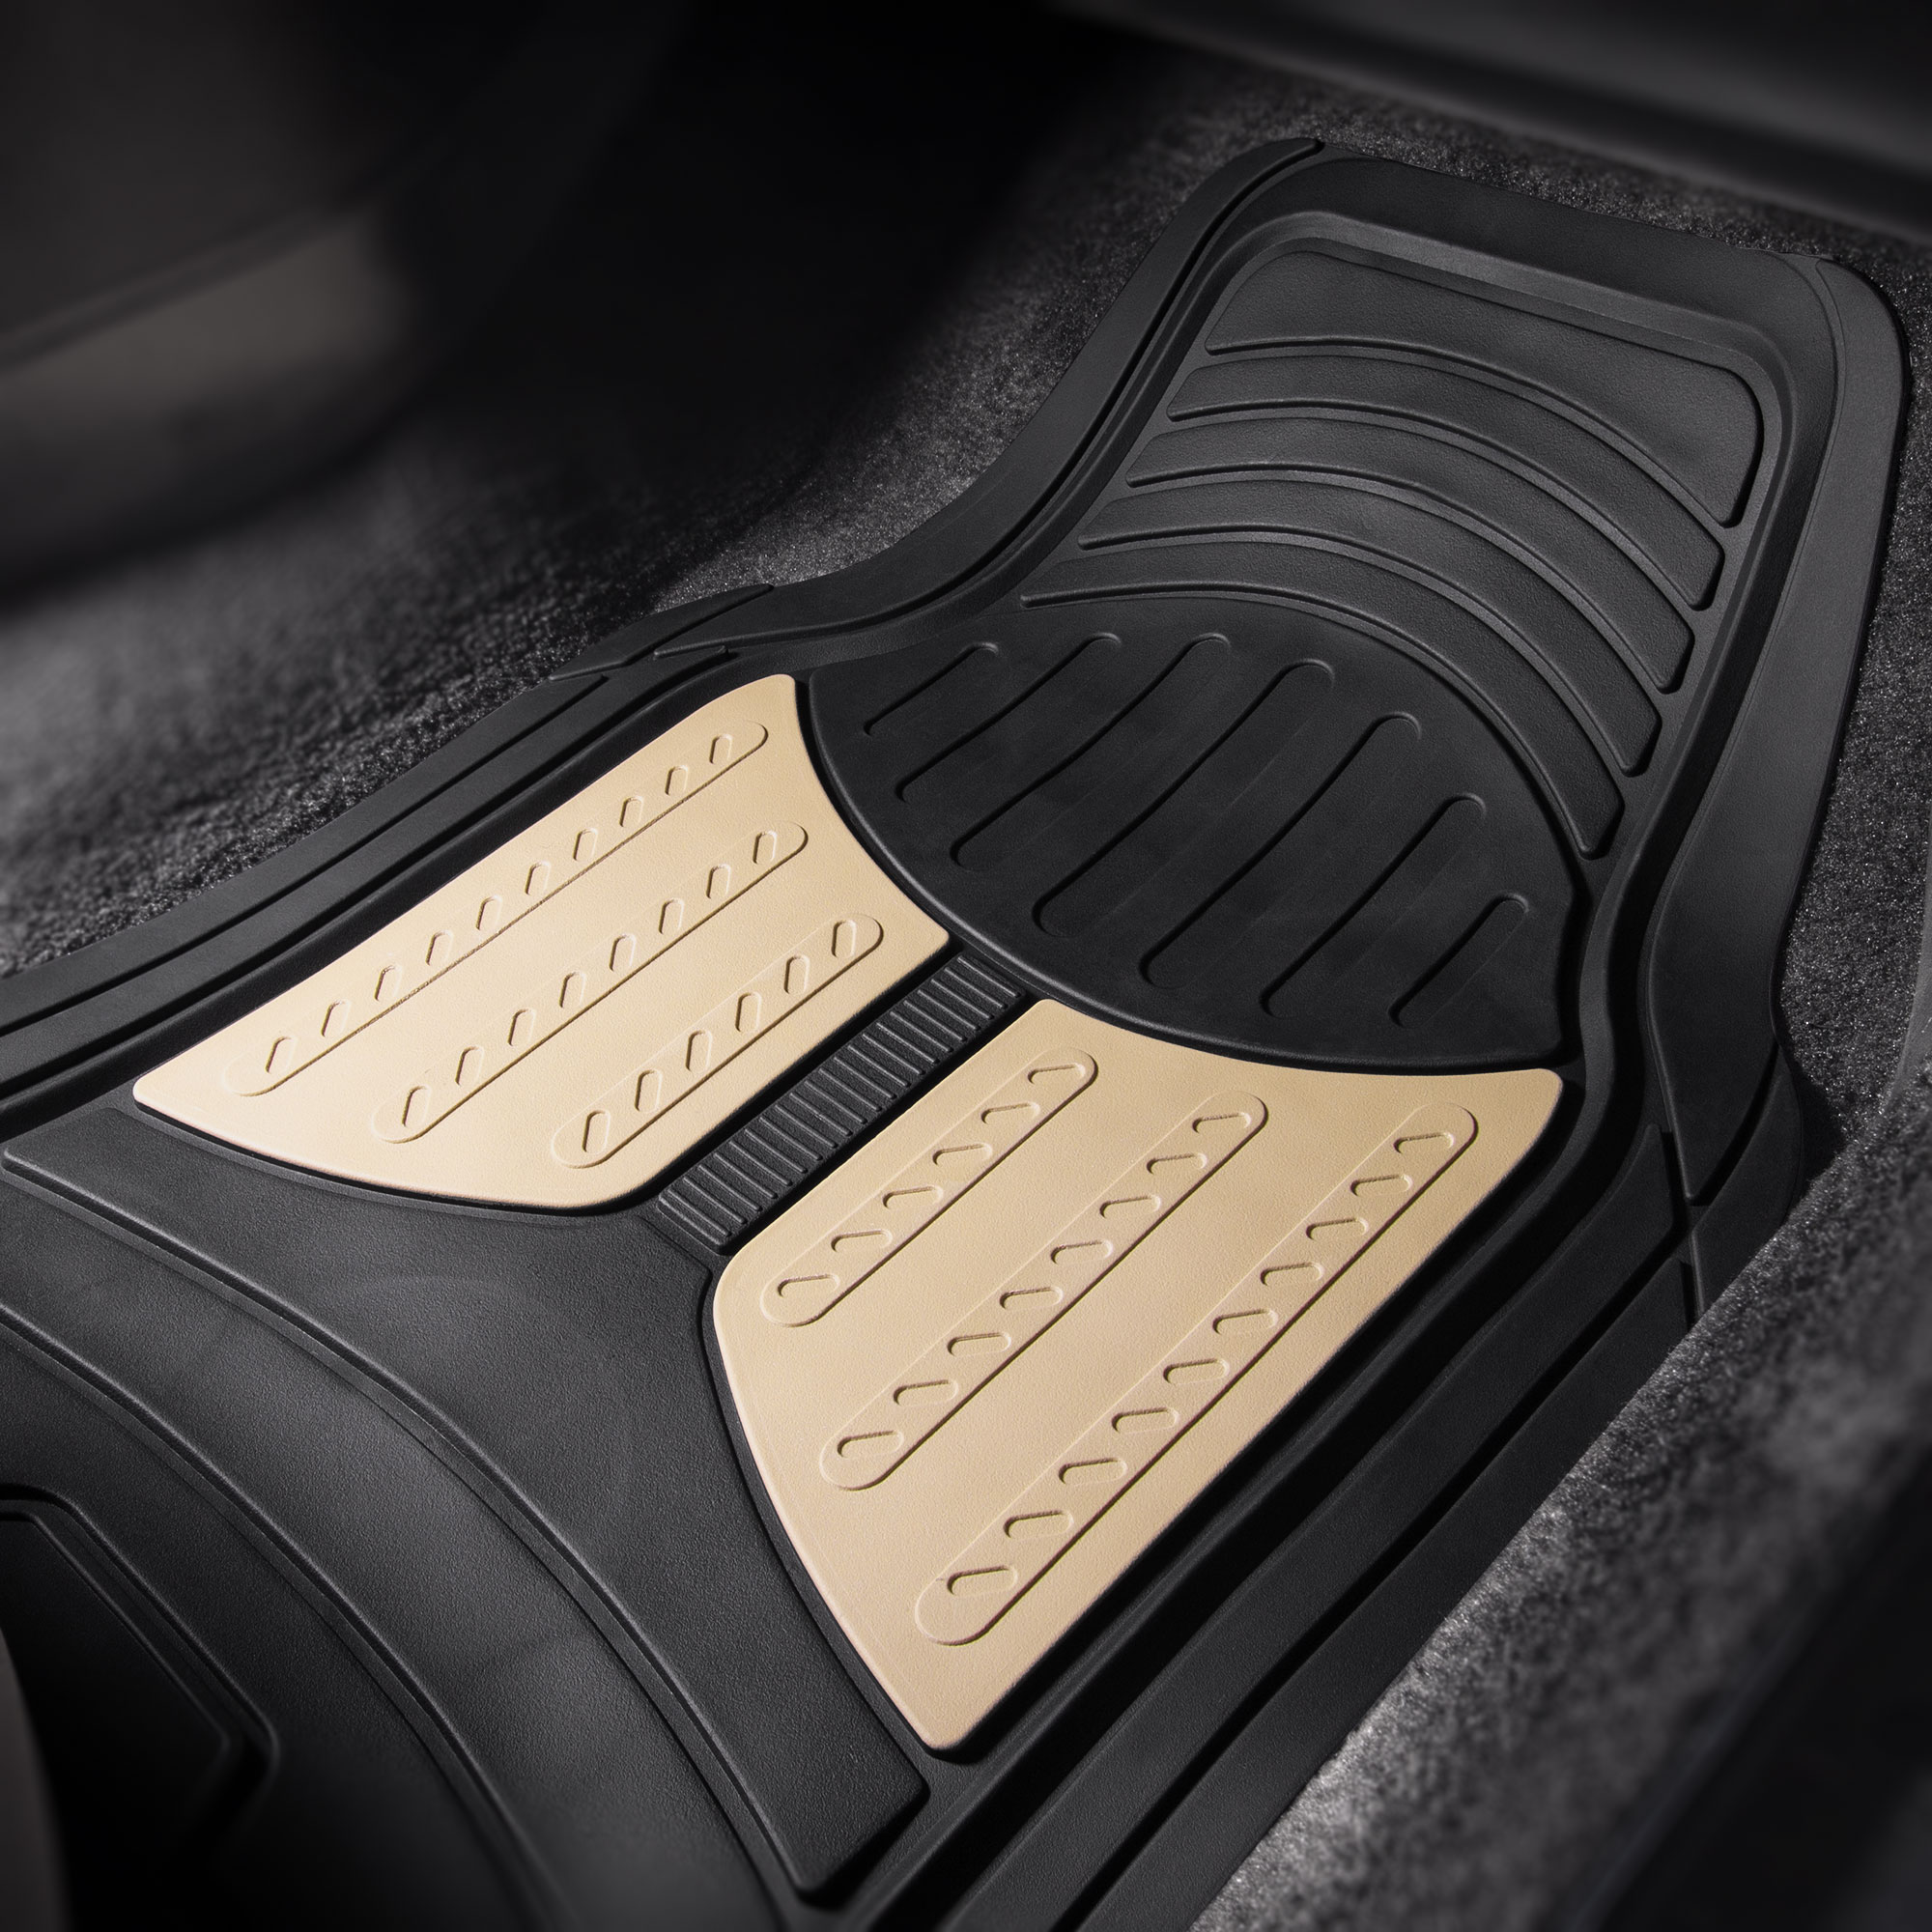 Car-Floor-Mats-for-All-Weather-Rubber-2-Tone-Design-4pc-Set-Heavy-Duty thumbnail 6